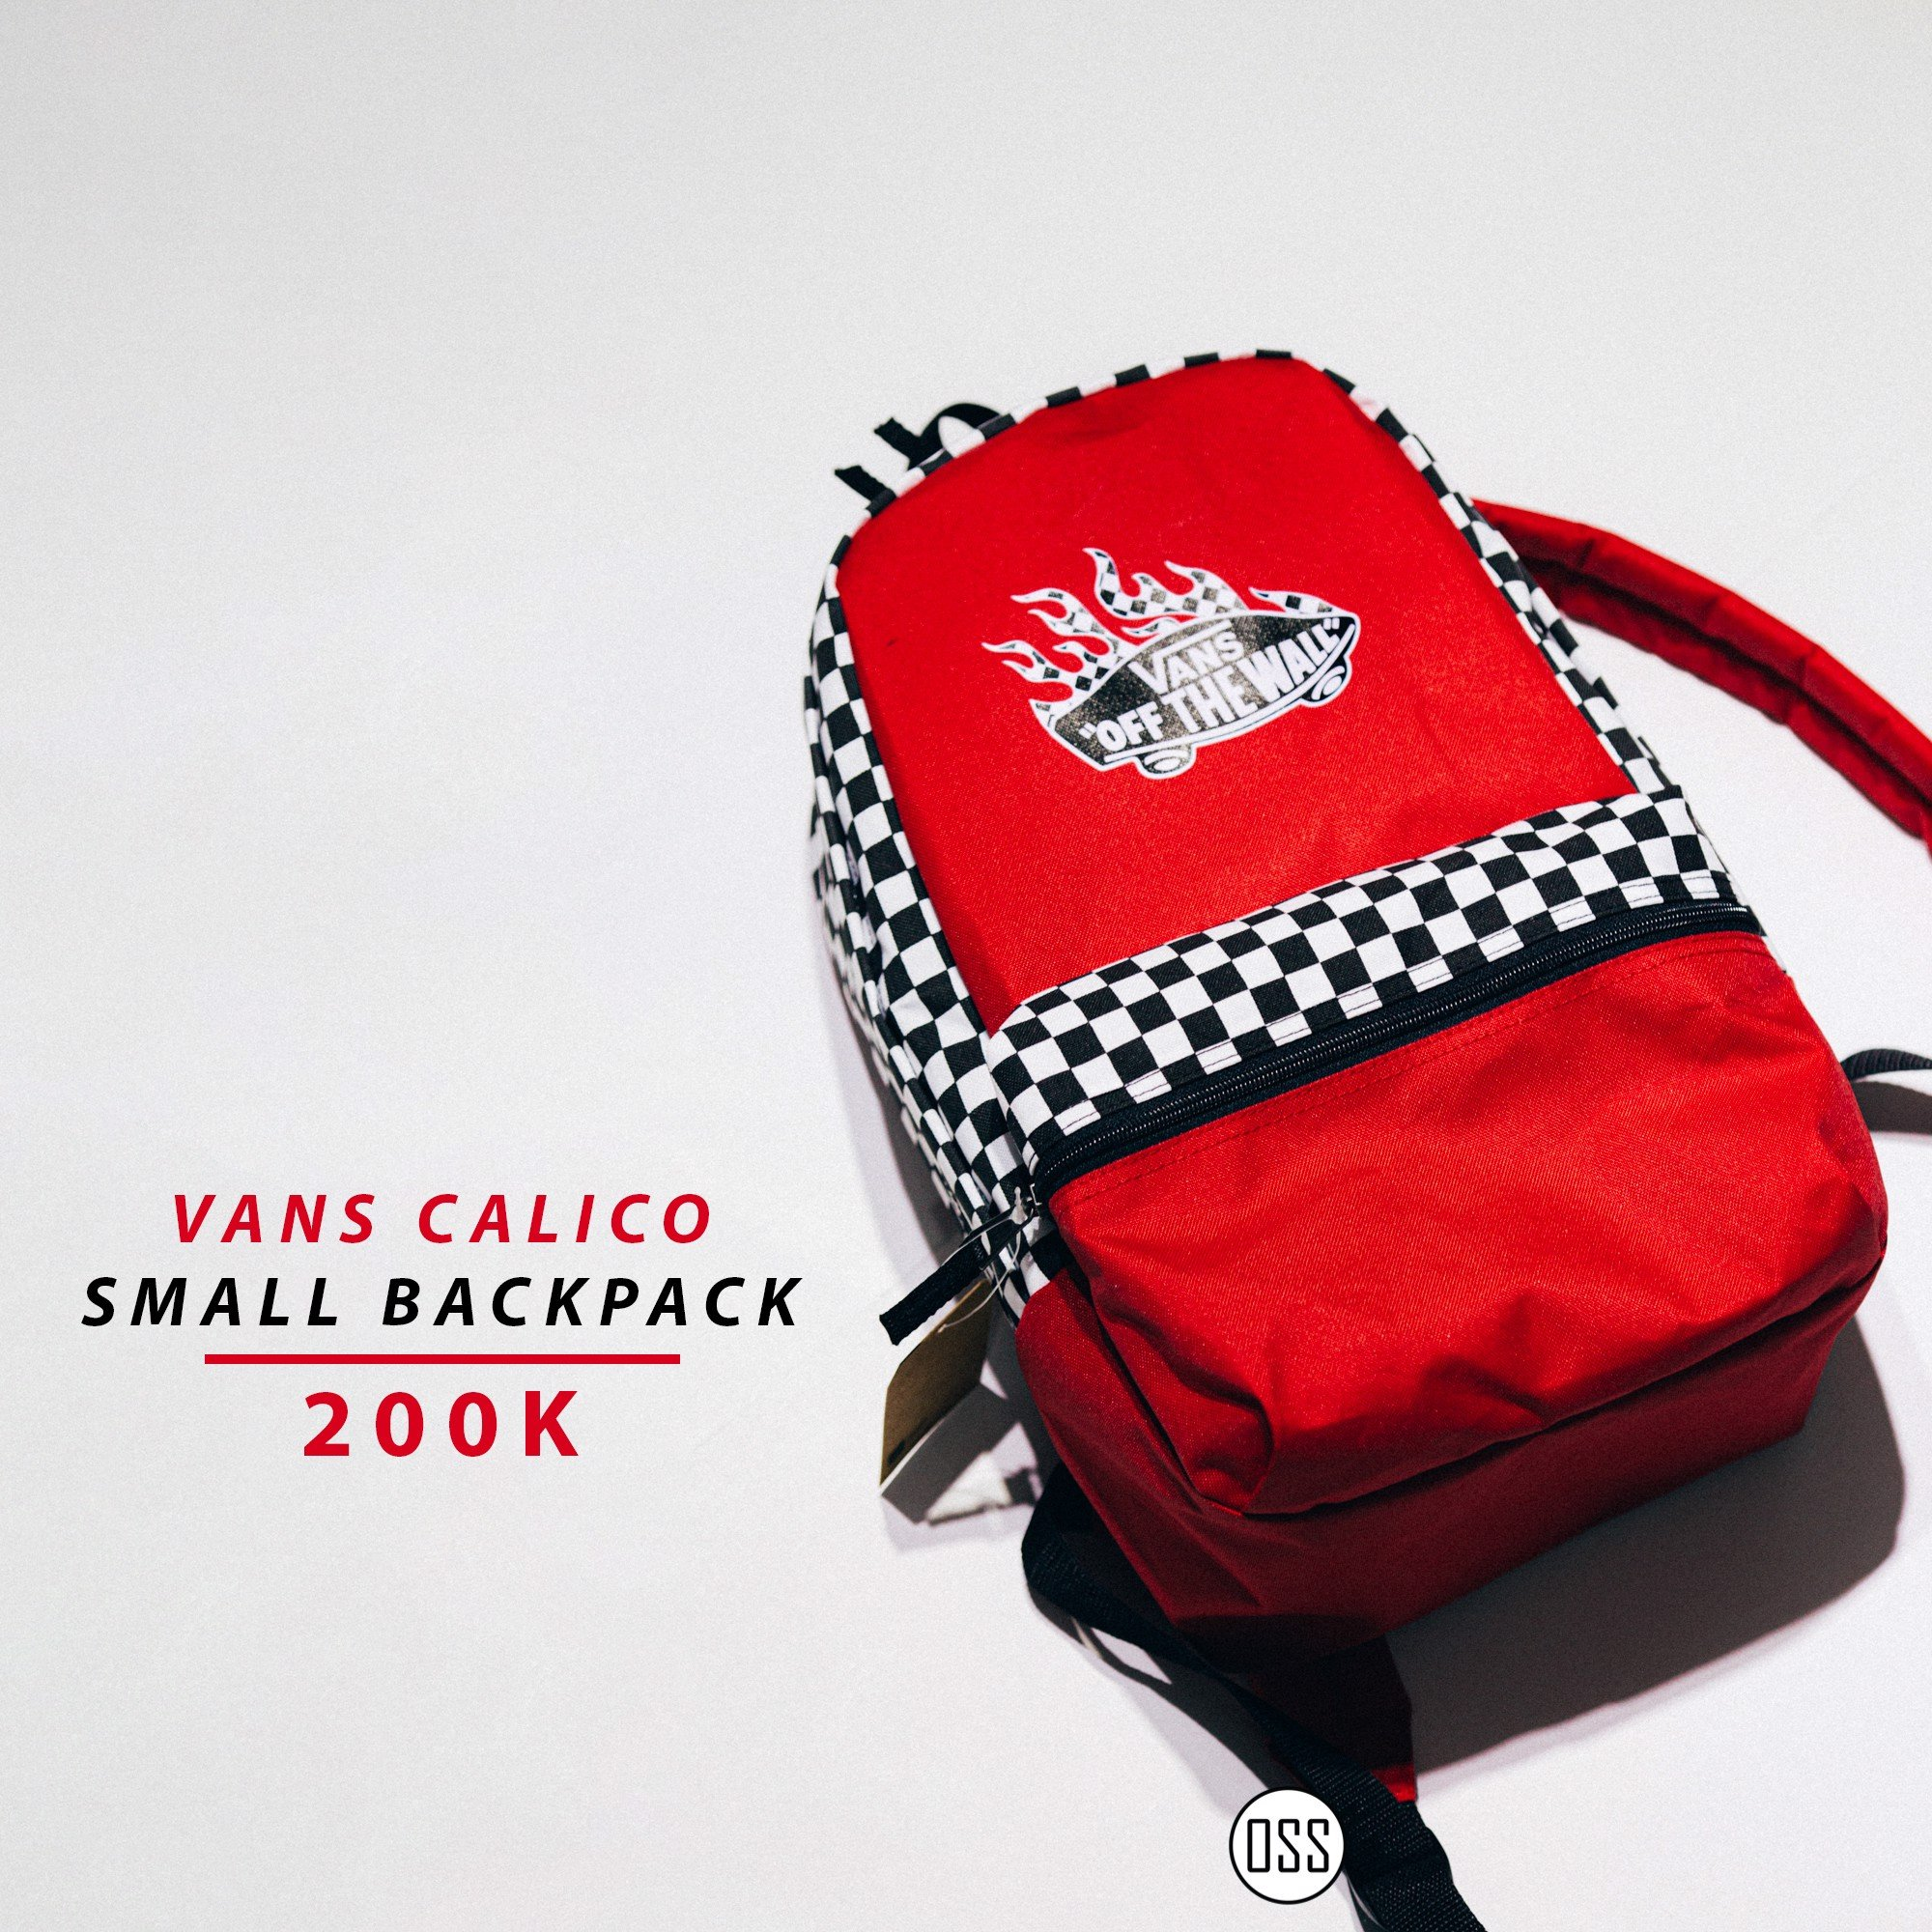 Vans Calico Small Backpack